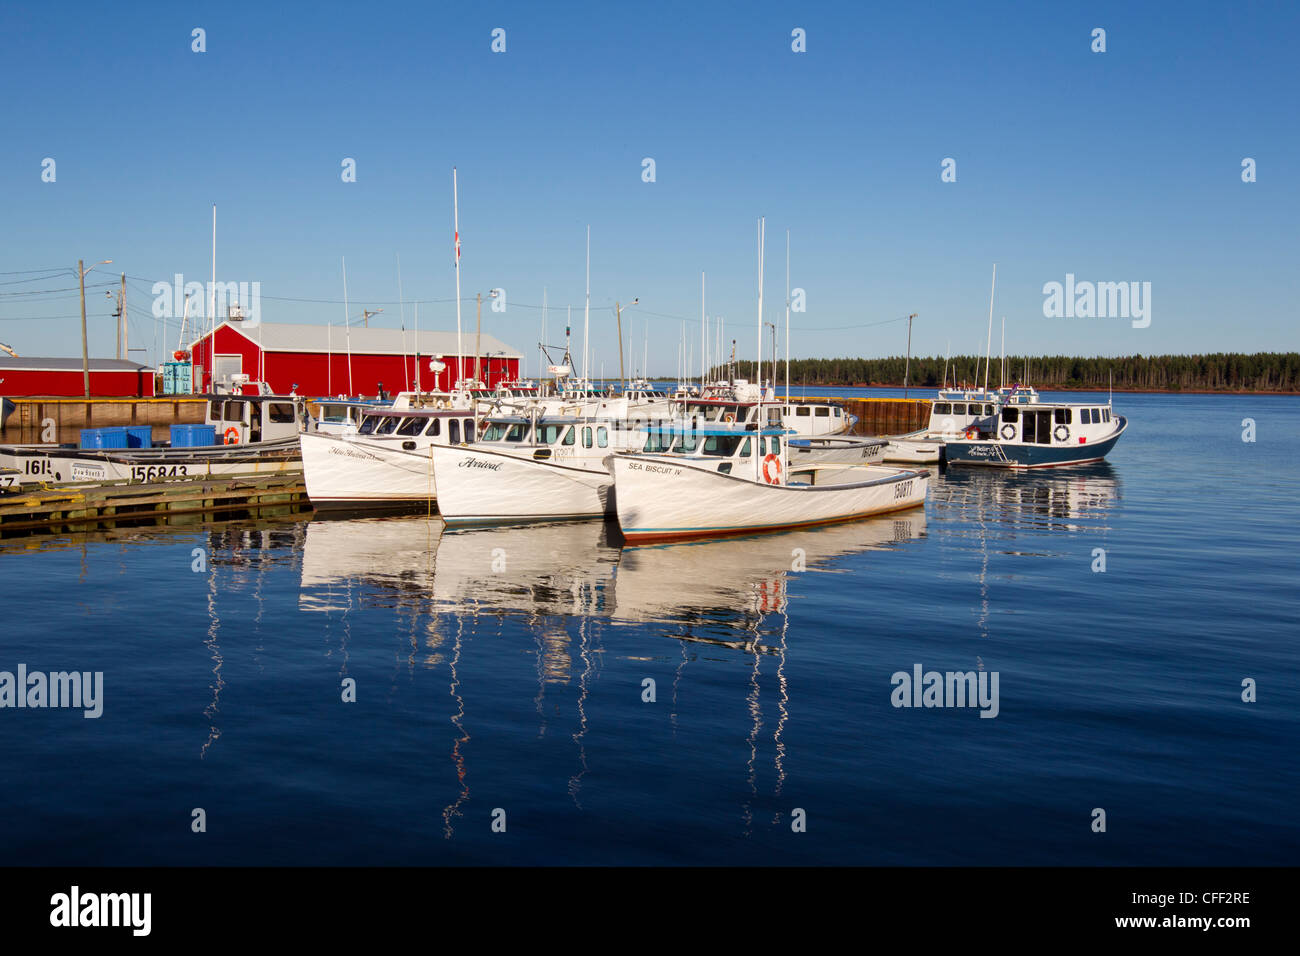 Fishing boat tied up at wharf, Northport, Prince Edward Island, Canada - Stock Image